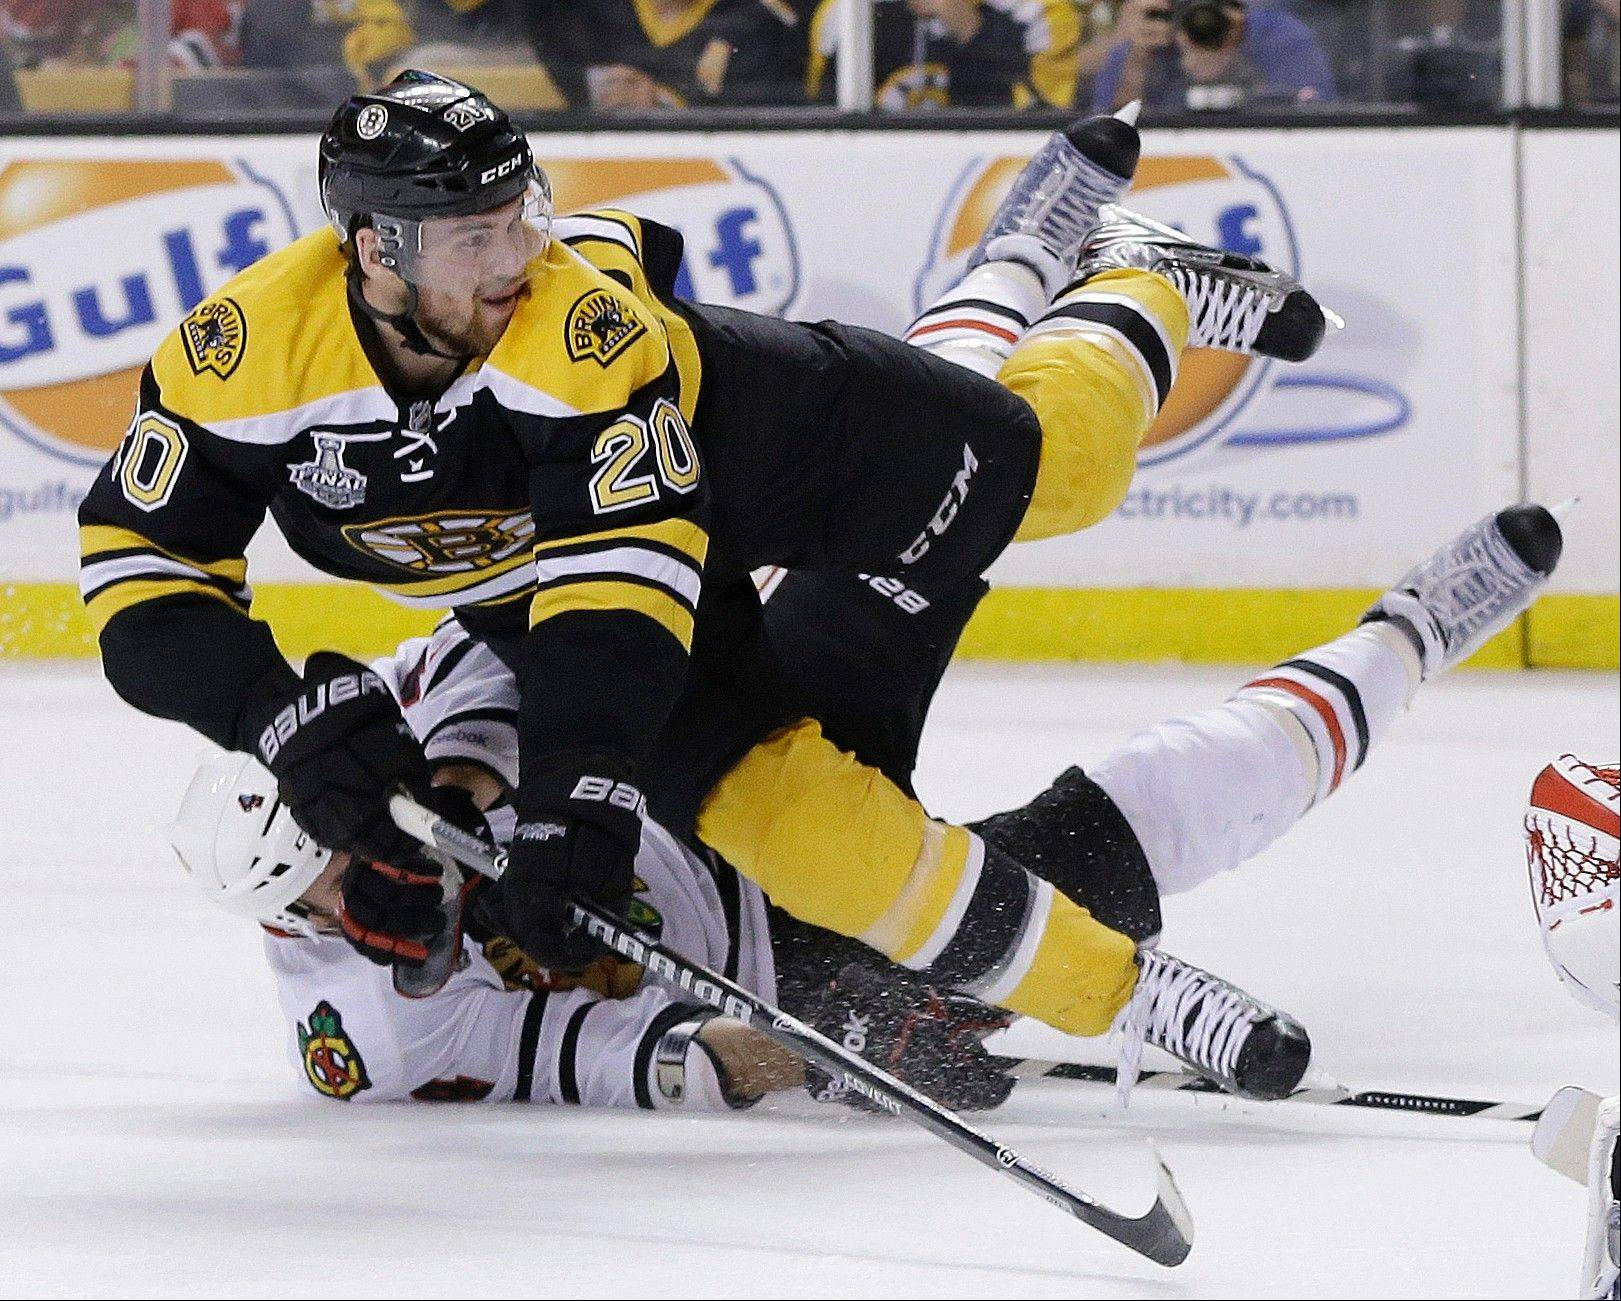 Chicago Blackhawks defenseman Niklas Hjalmarsson, bottom, of Sweden, takes down Boston Bruins left wing Daniel Paille (20) during the second period in Game 3 of the NHL hockey Stanley Cup Finals. The Bruins scored the game's second goal on the power play that followed.